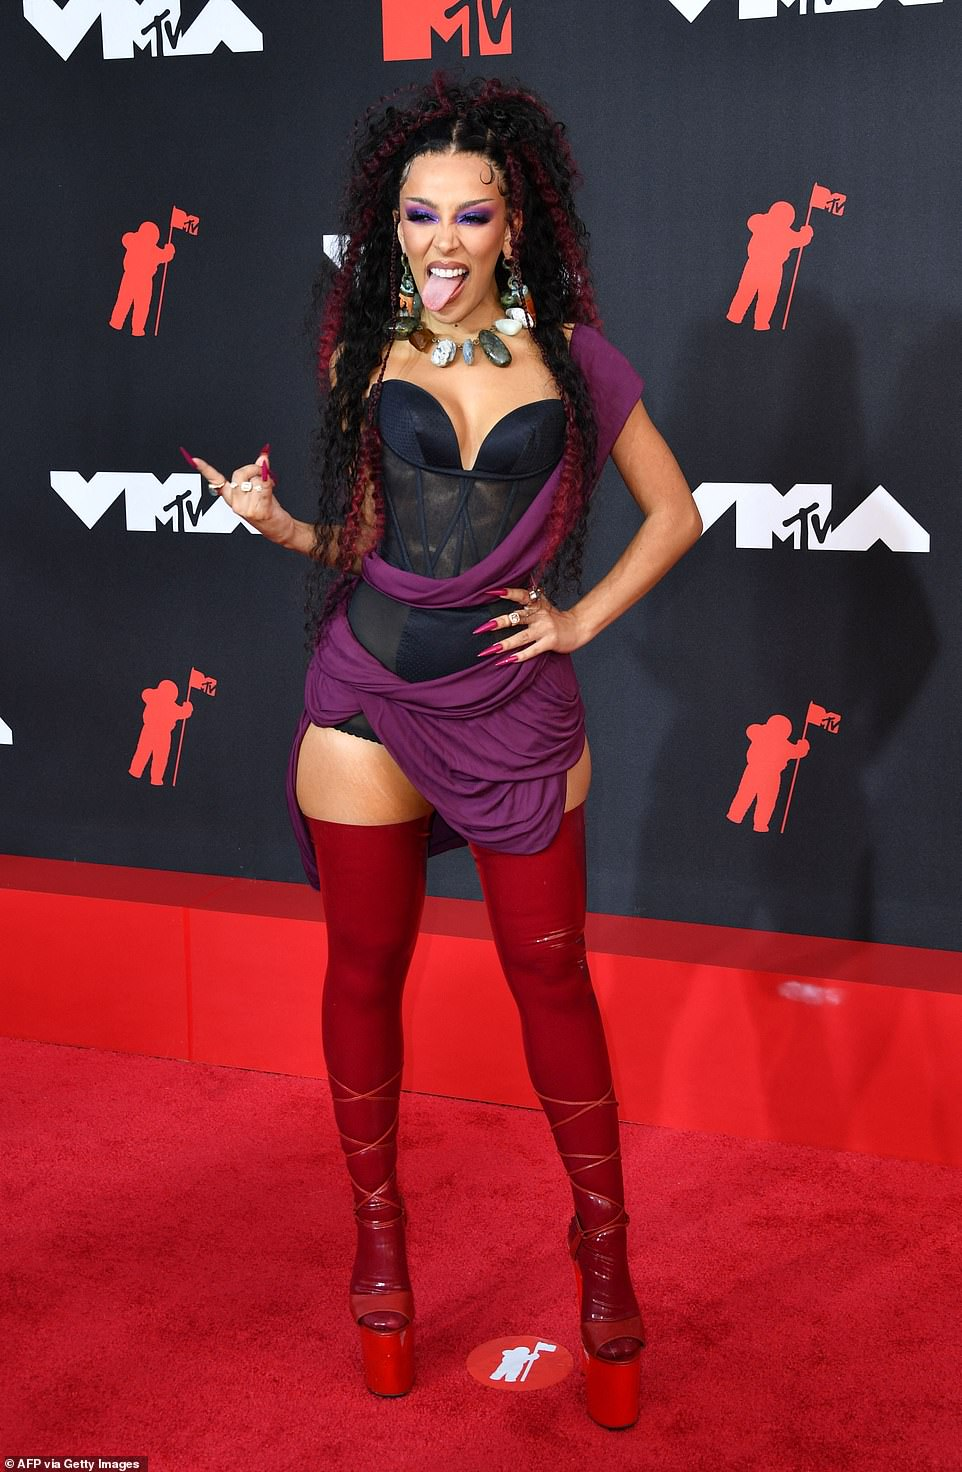 Girl power:Doja Cat - who was hosting the evening's affair - was the star of the evening, strutting down the red carpet wearing a toga-inspired look with a black bustier and drapey plum fabric